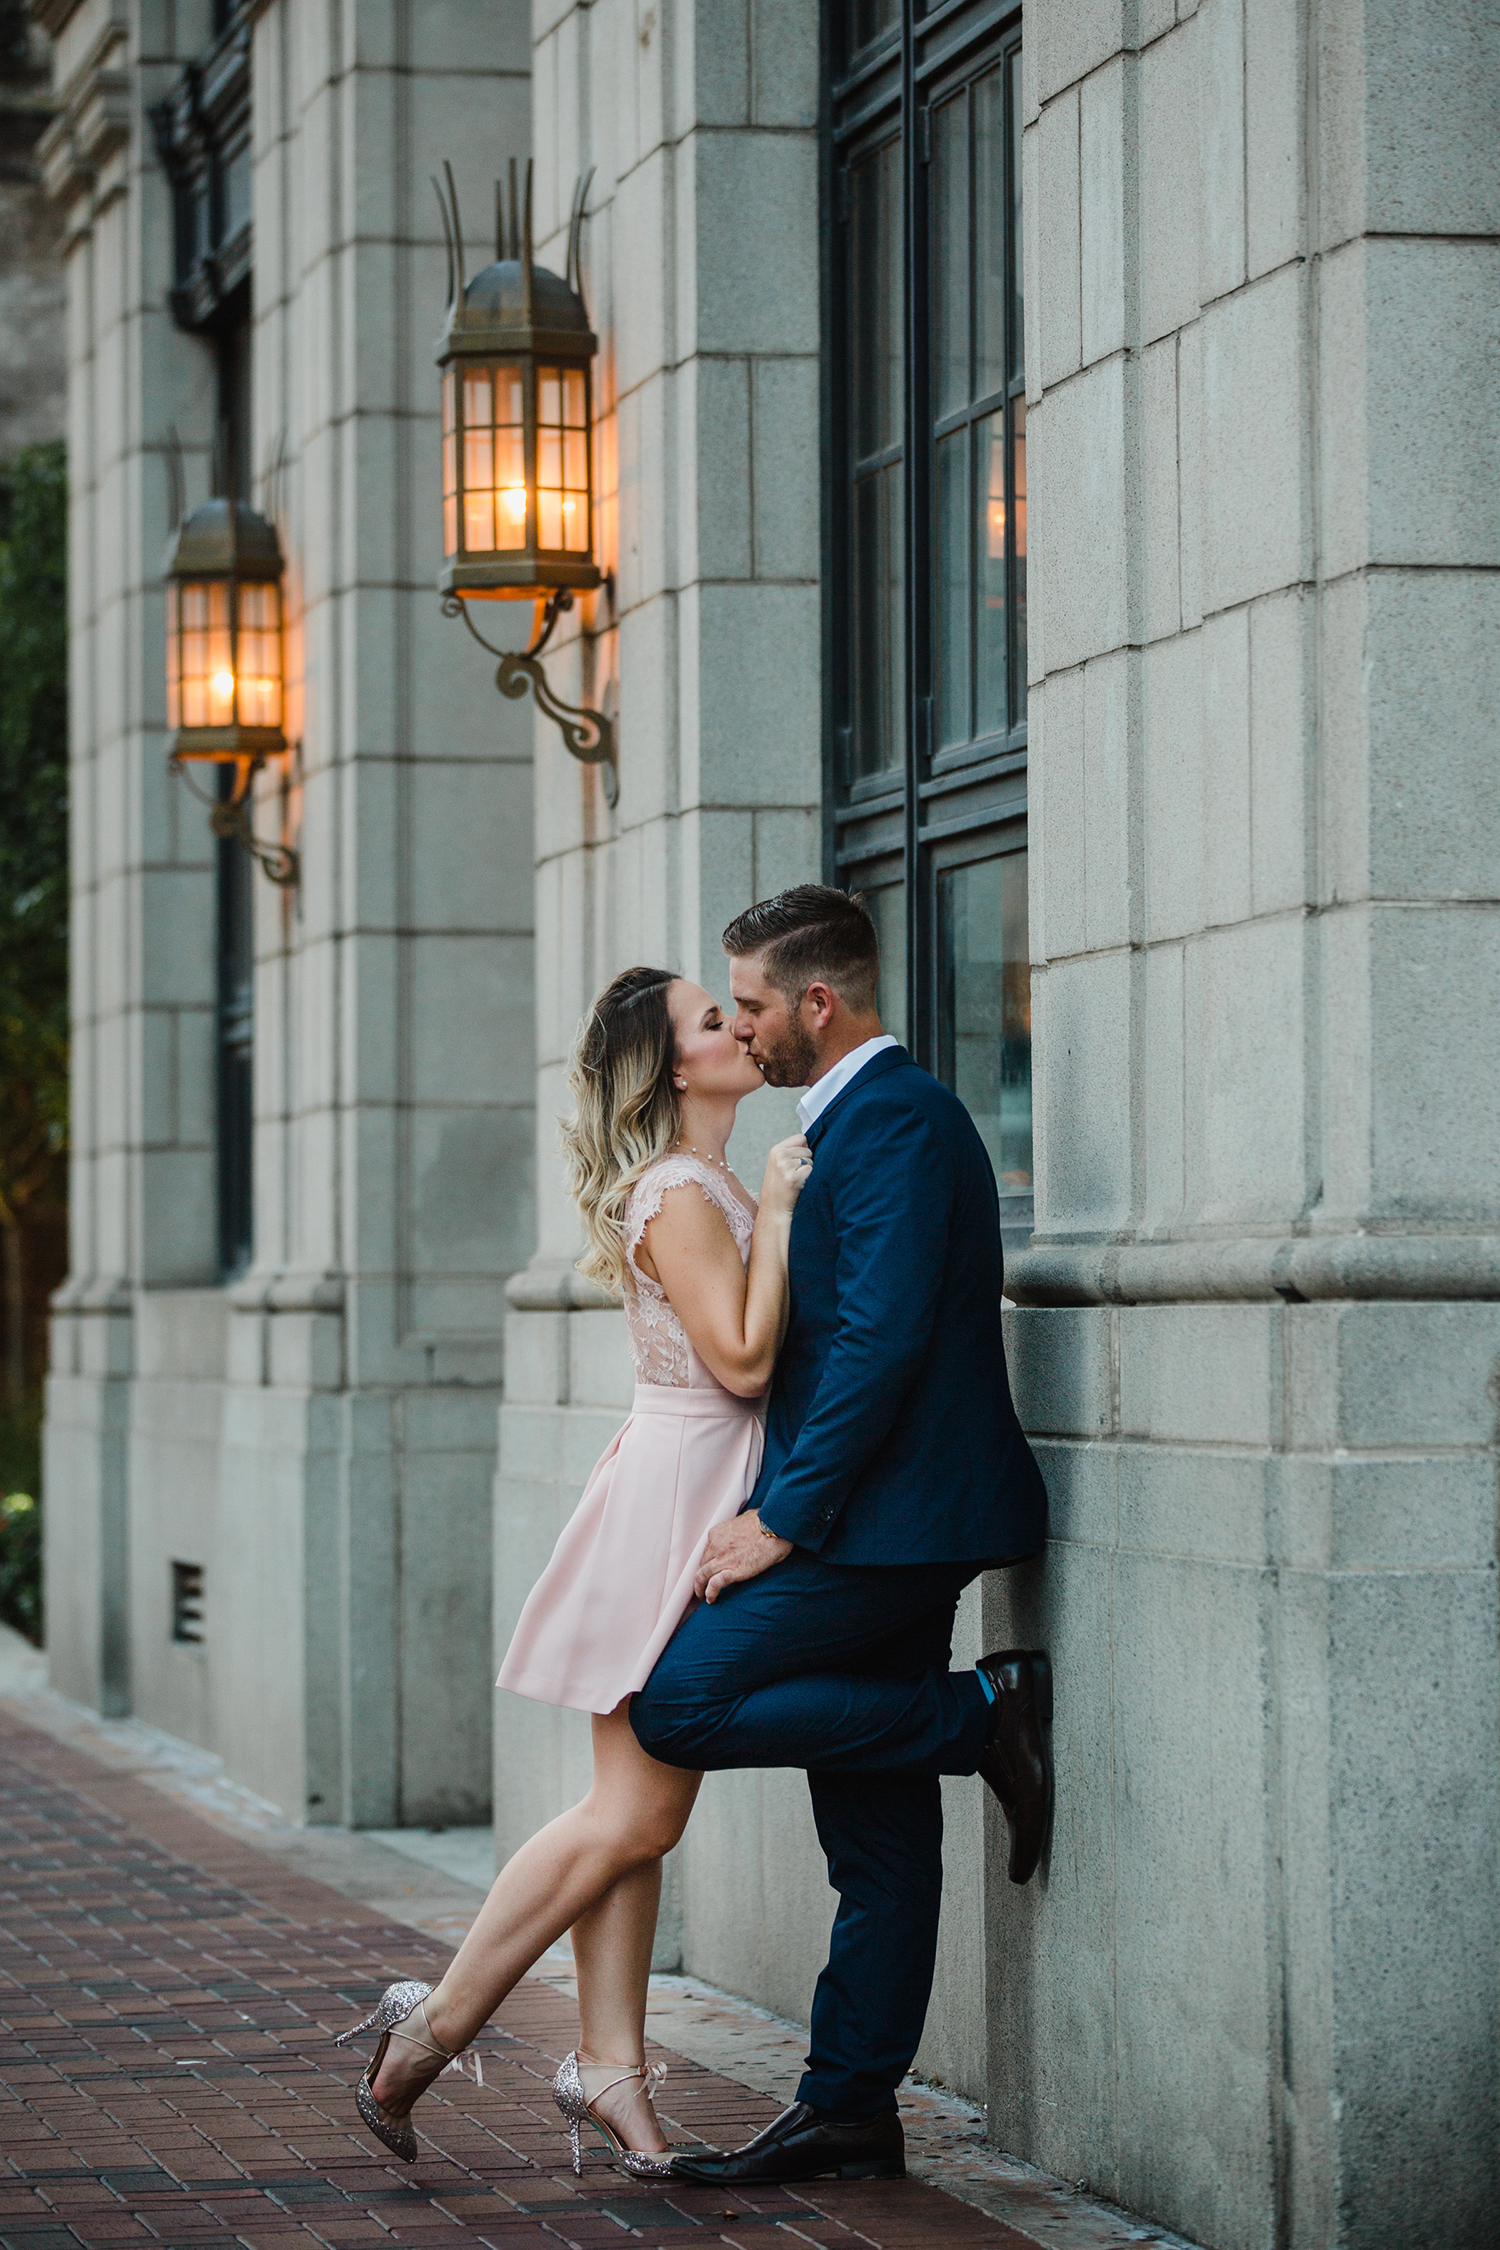 Eri Reyna - Houston Wedding and Engagement Portrait Photographer